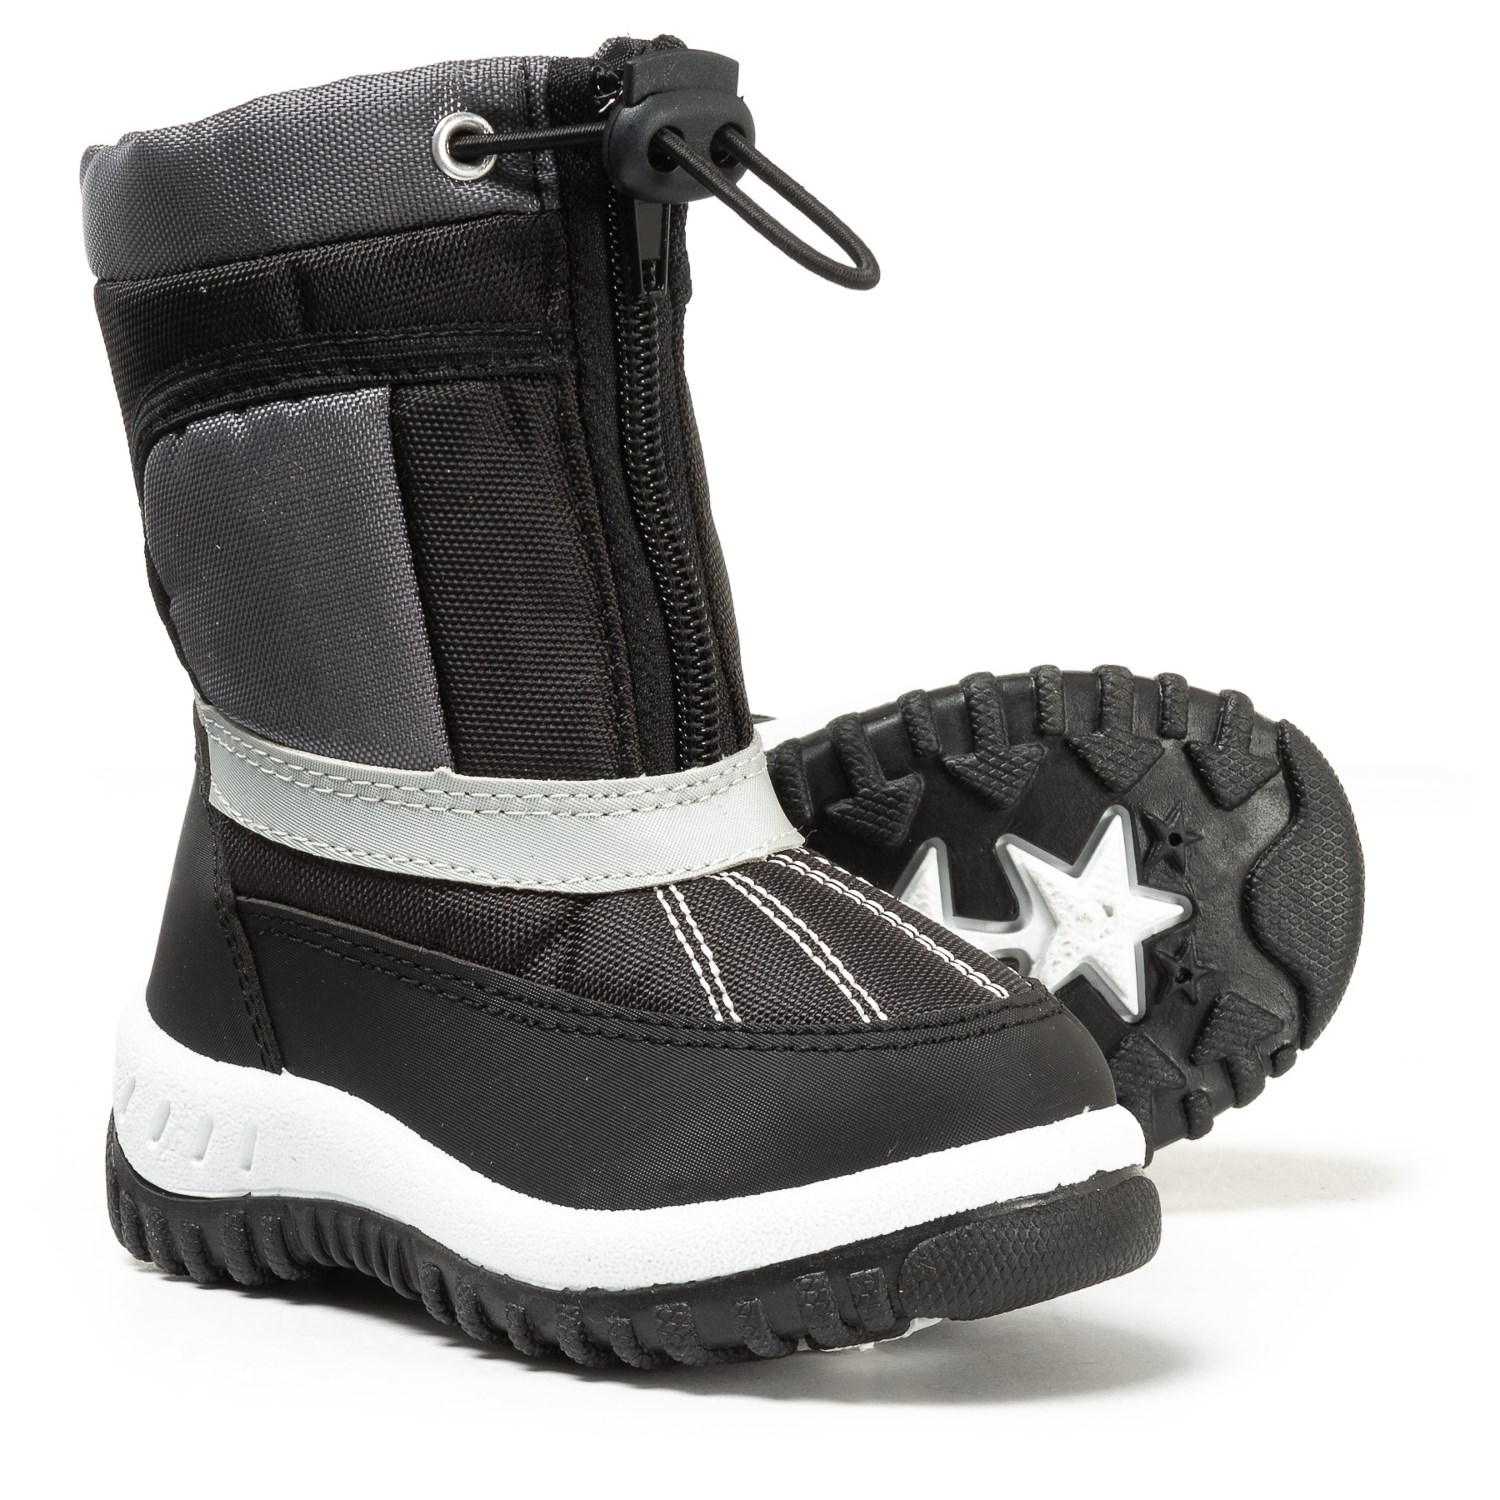 Rugged Bear Zip And Lace Snow Boots For Toddler Boys